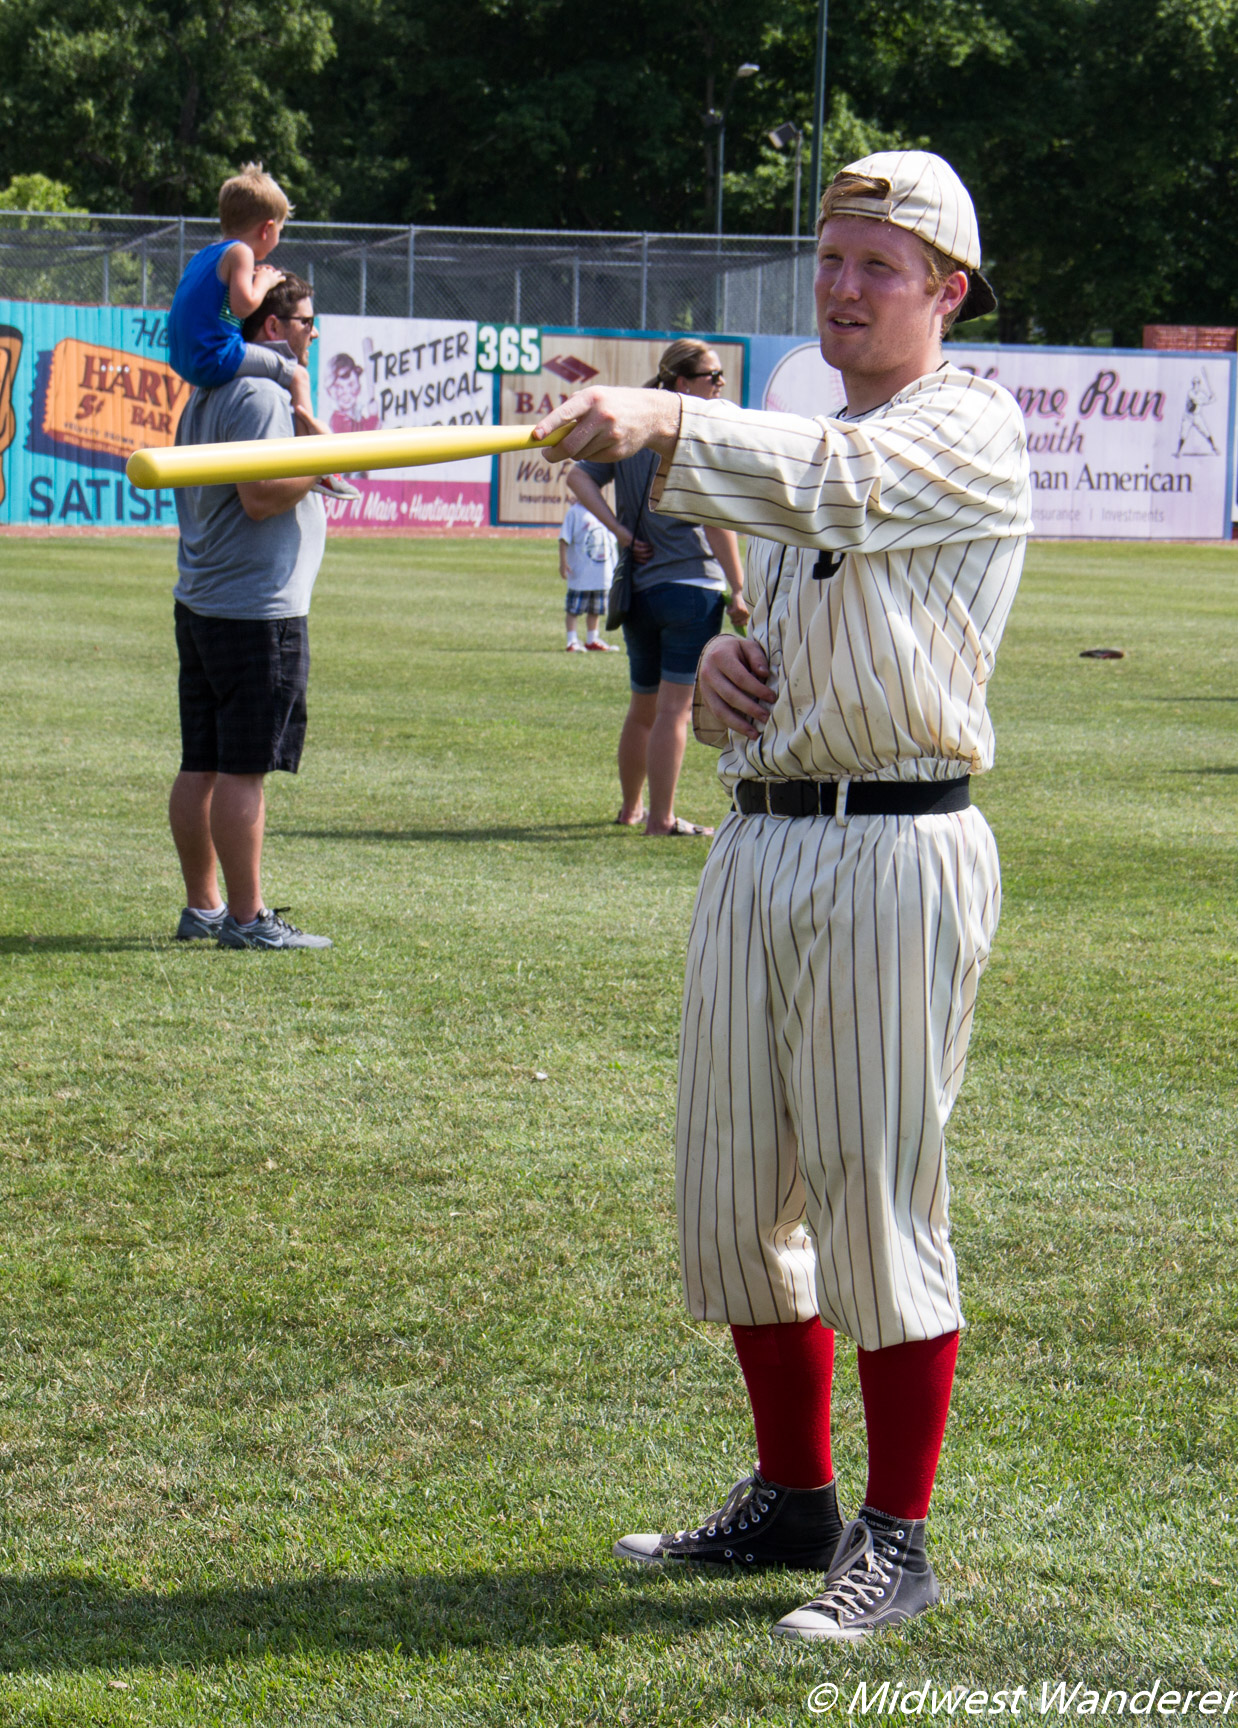 Vintage baseball uniform